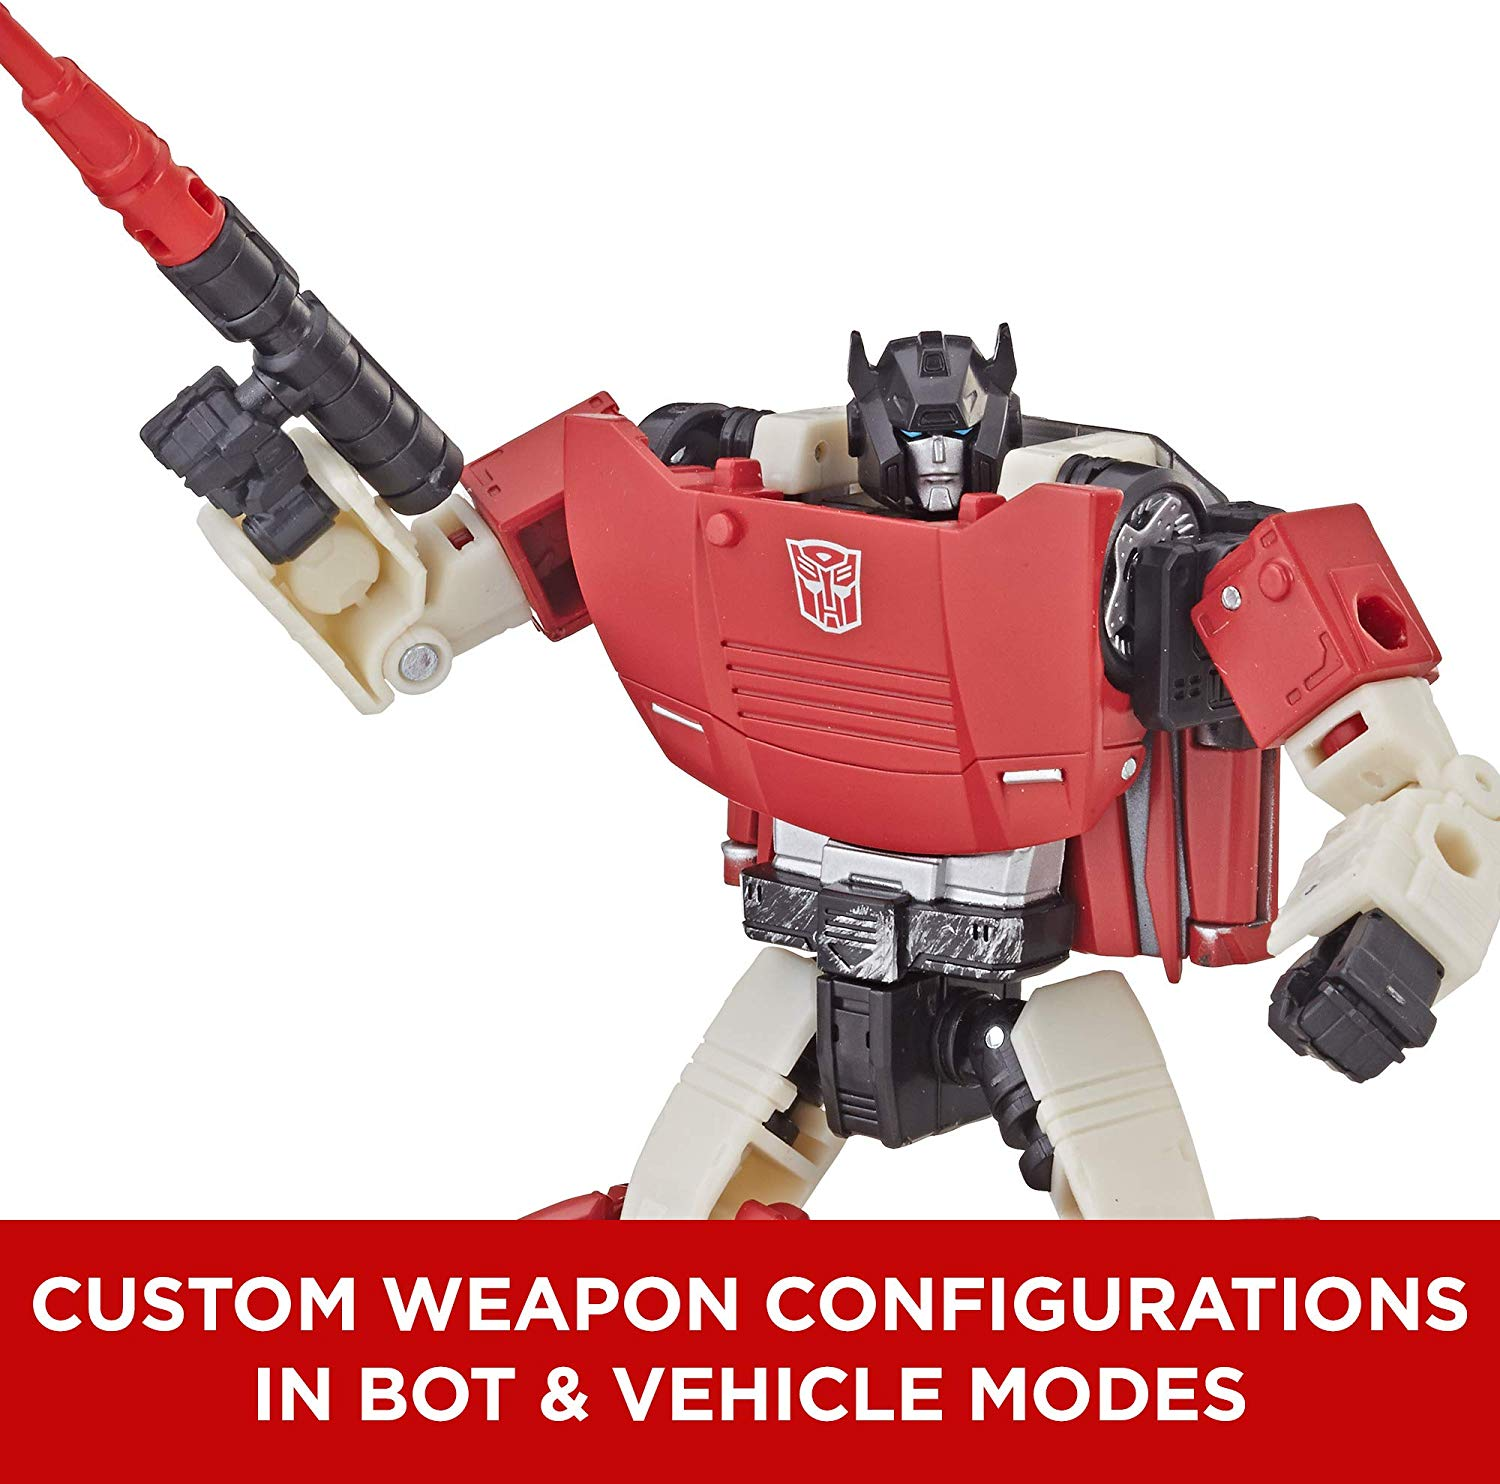 Transformers - War for Cybertron: SIEGE - Sideswipe Action Figure (WFC-S7)